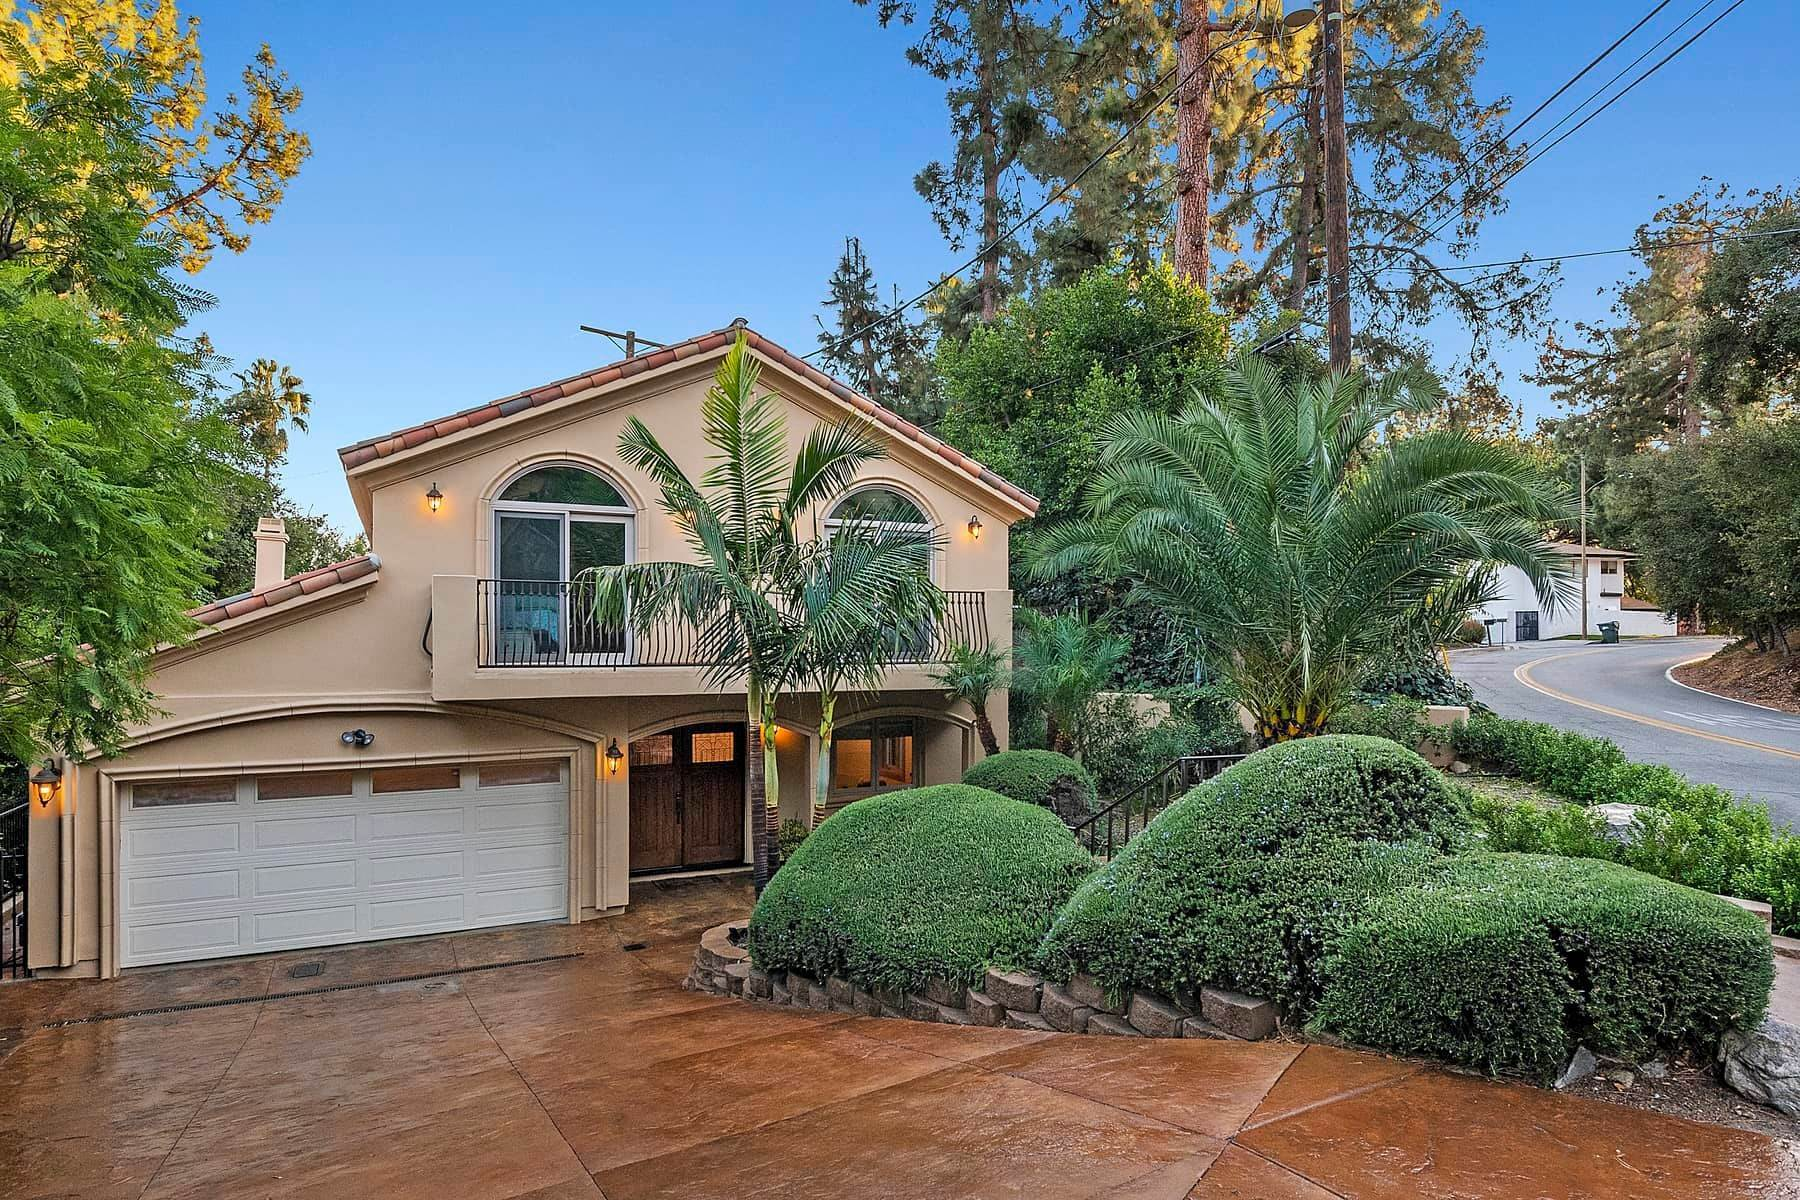 Single Family Homes for Sale at Beautiful Spanish Home 3100 Rubio Canyon Road Altadena, California 91001 United States